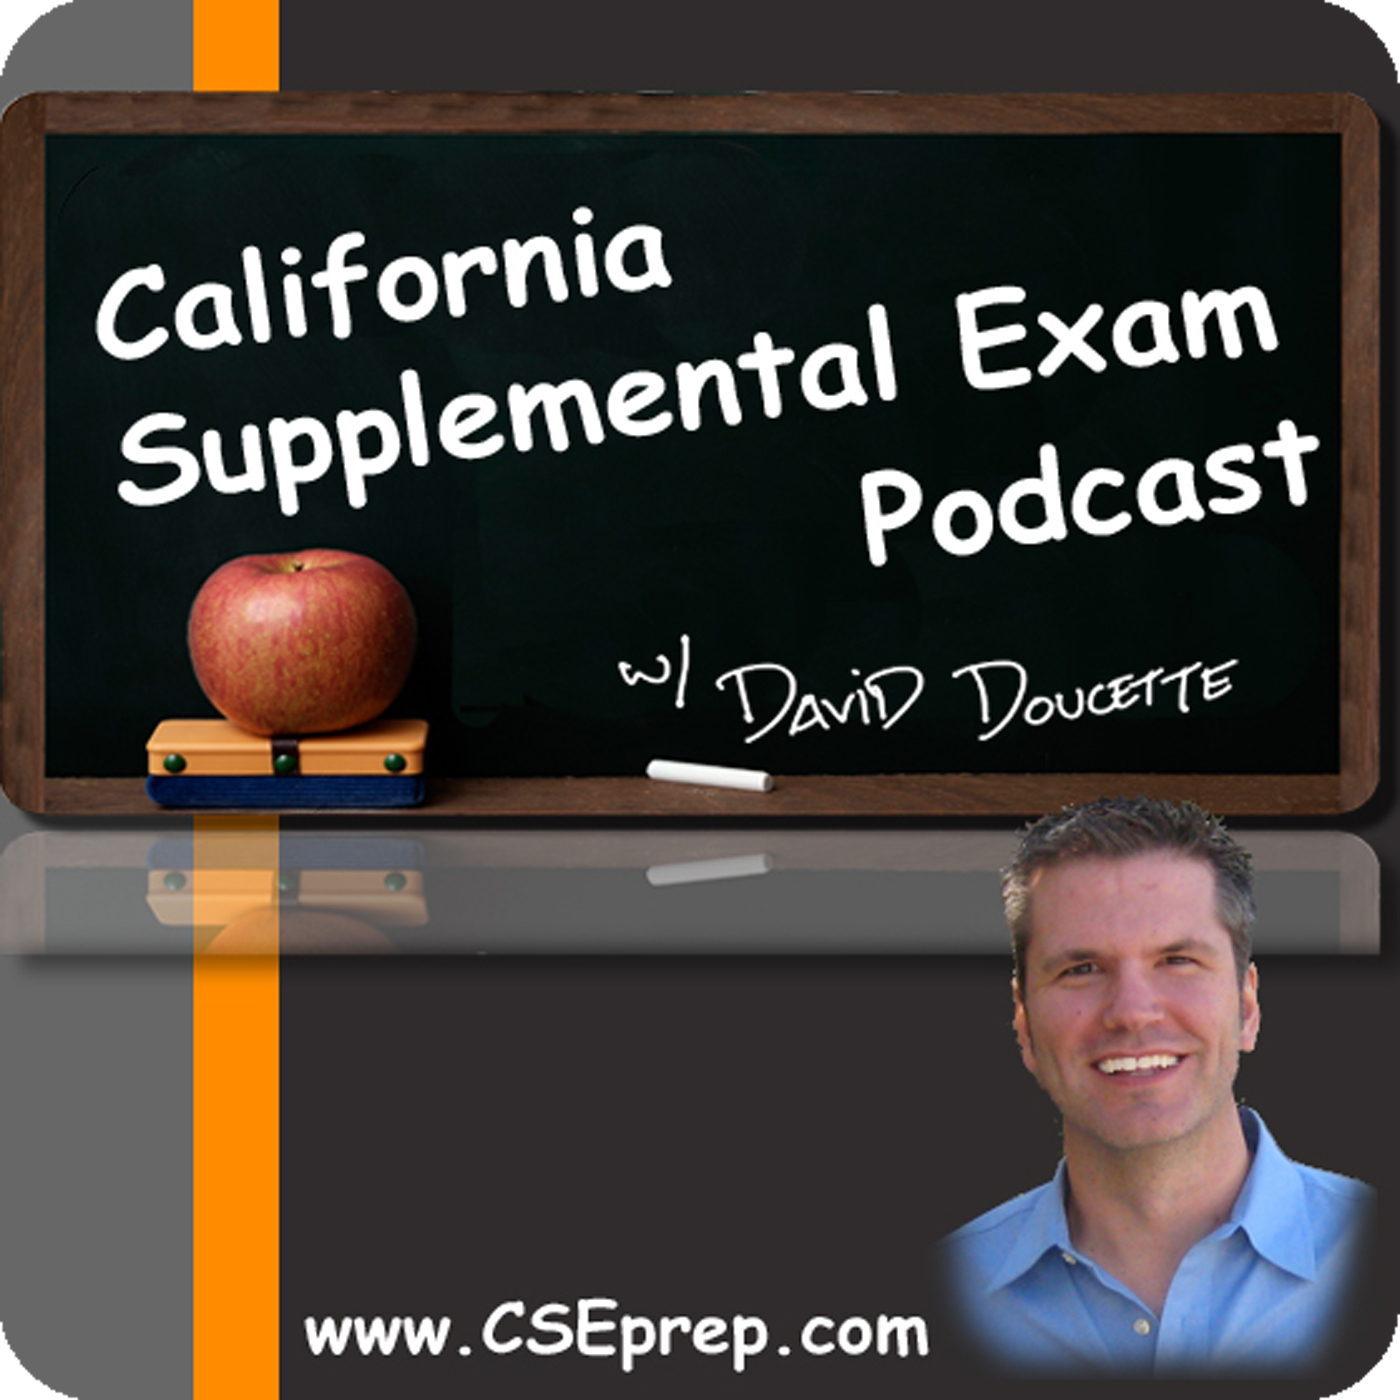 California Supplemental Exam Preparation